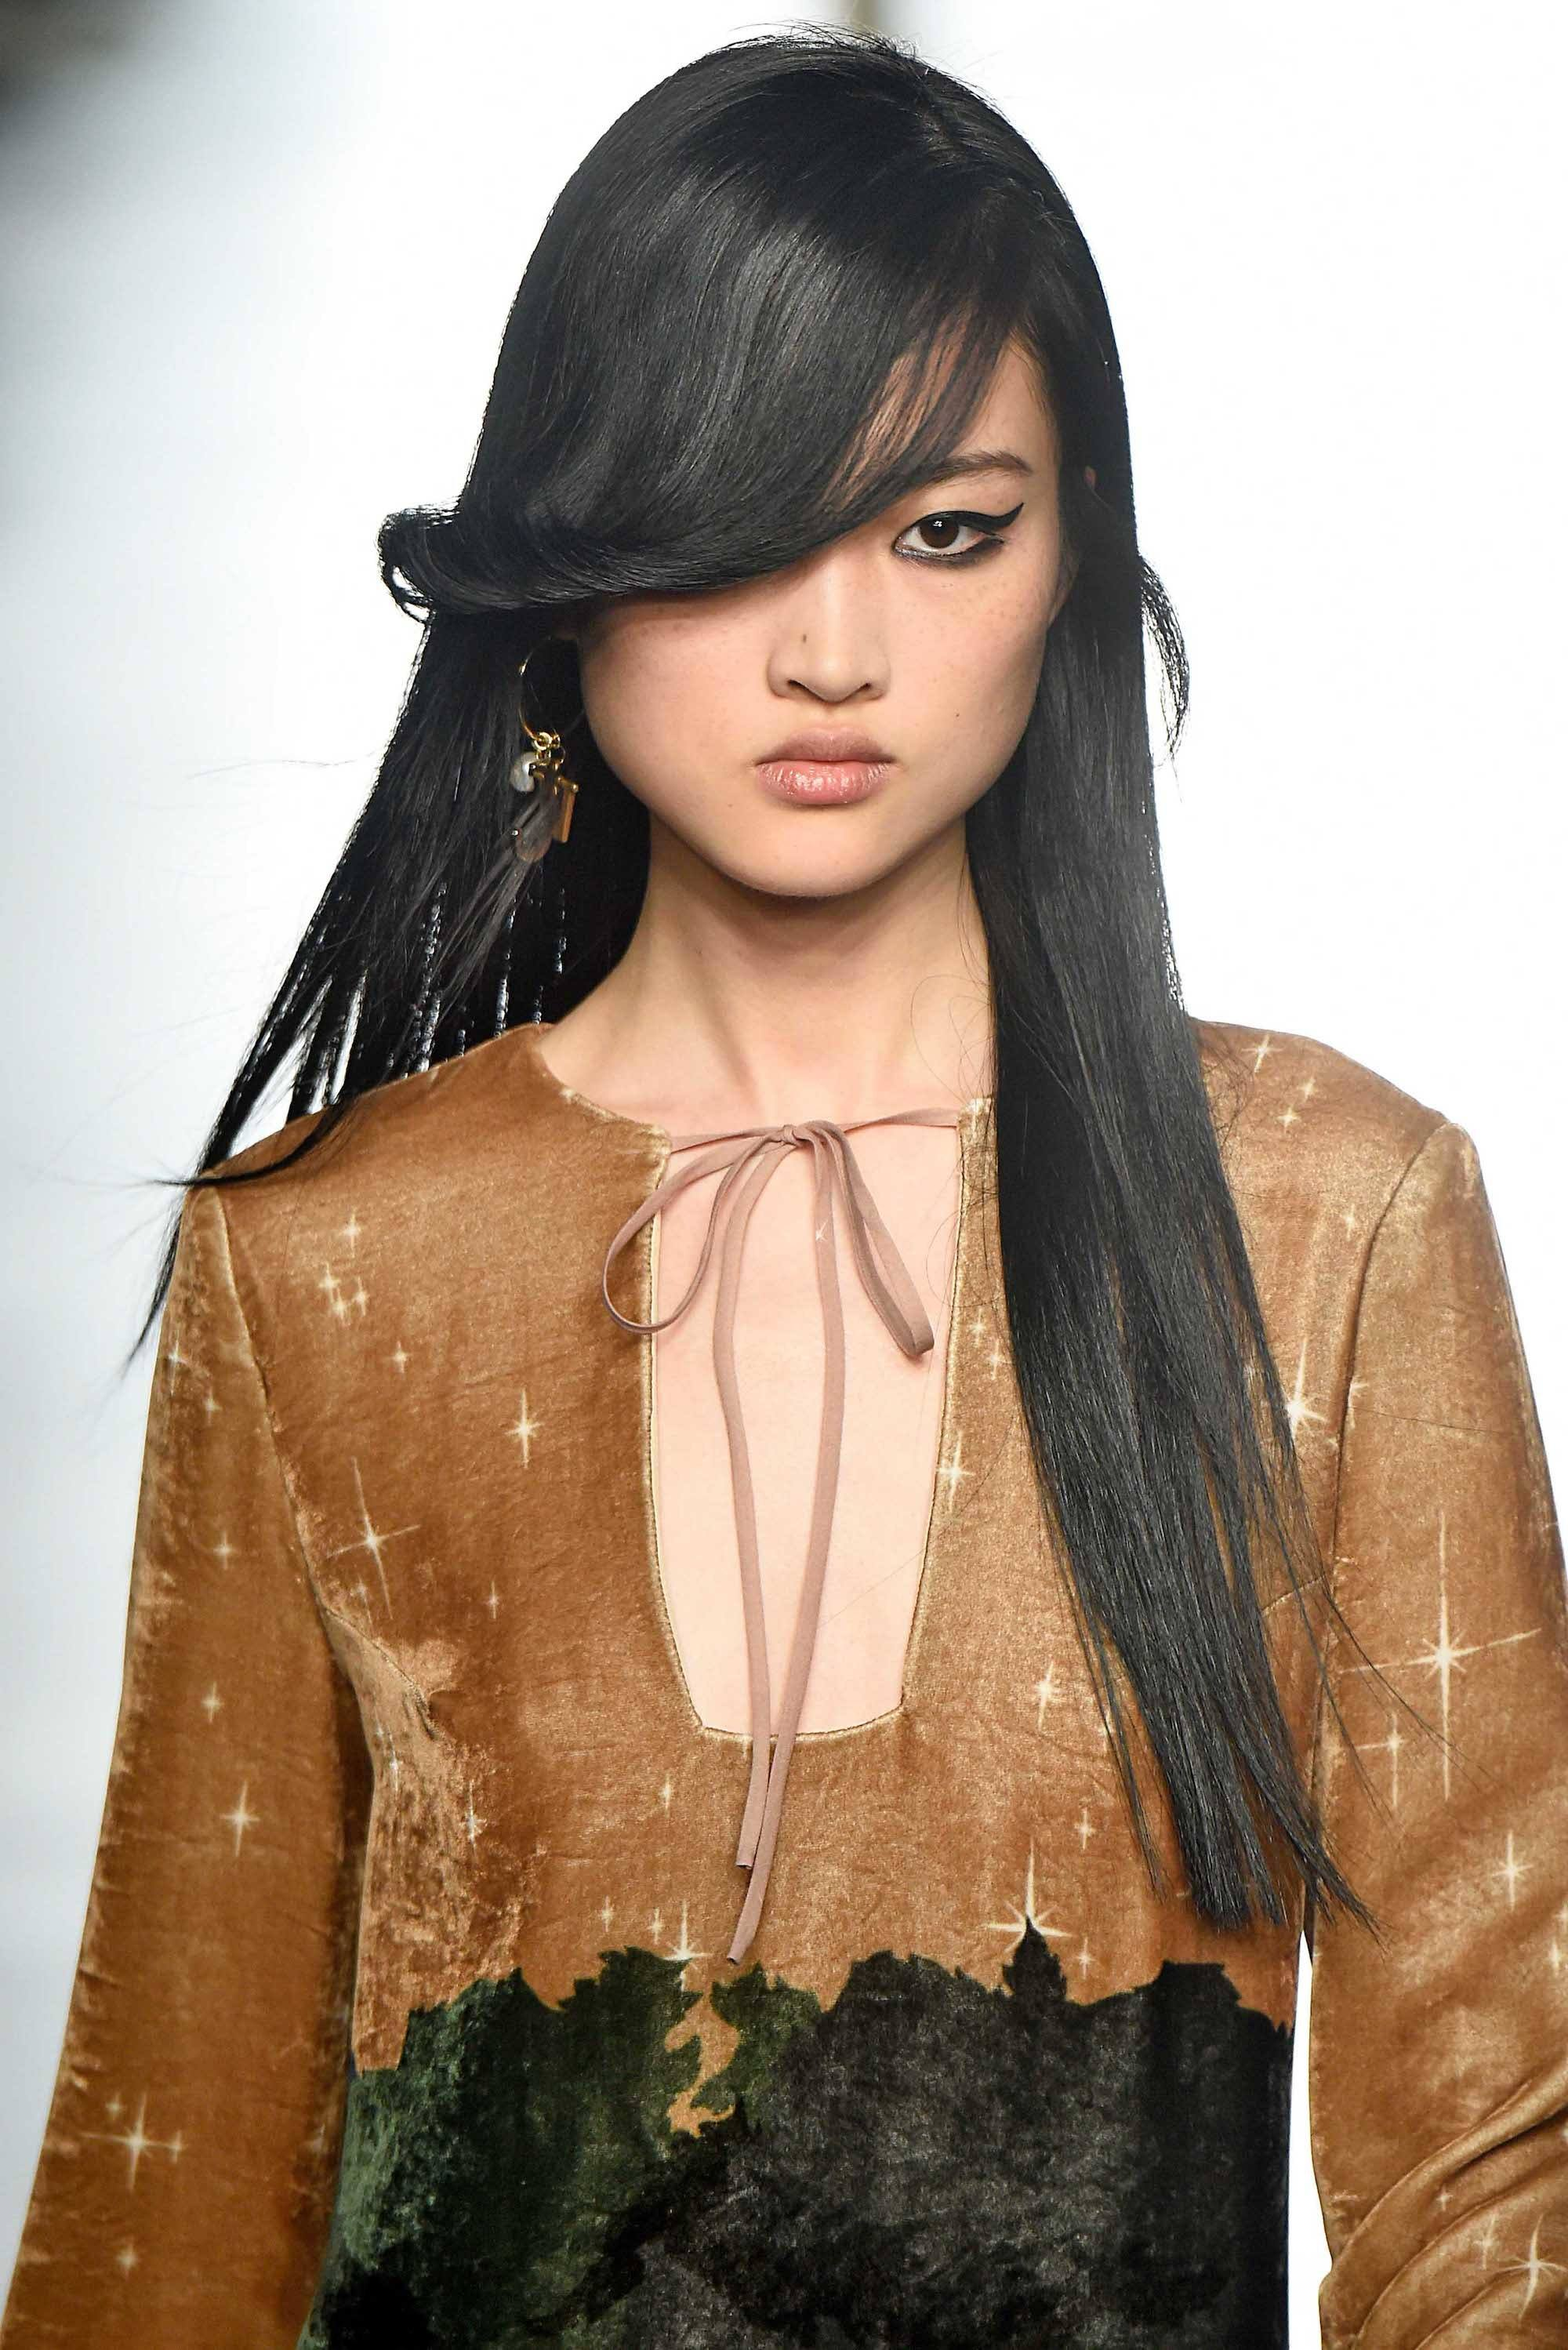 Asian woman with black long hair and side bangs